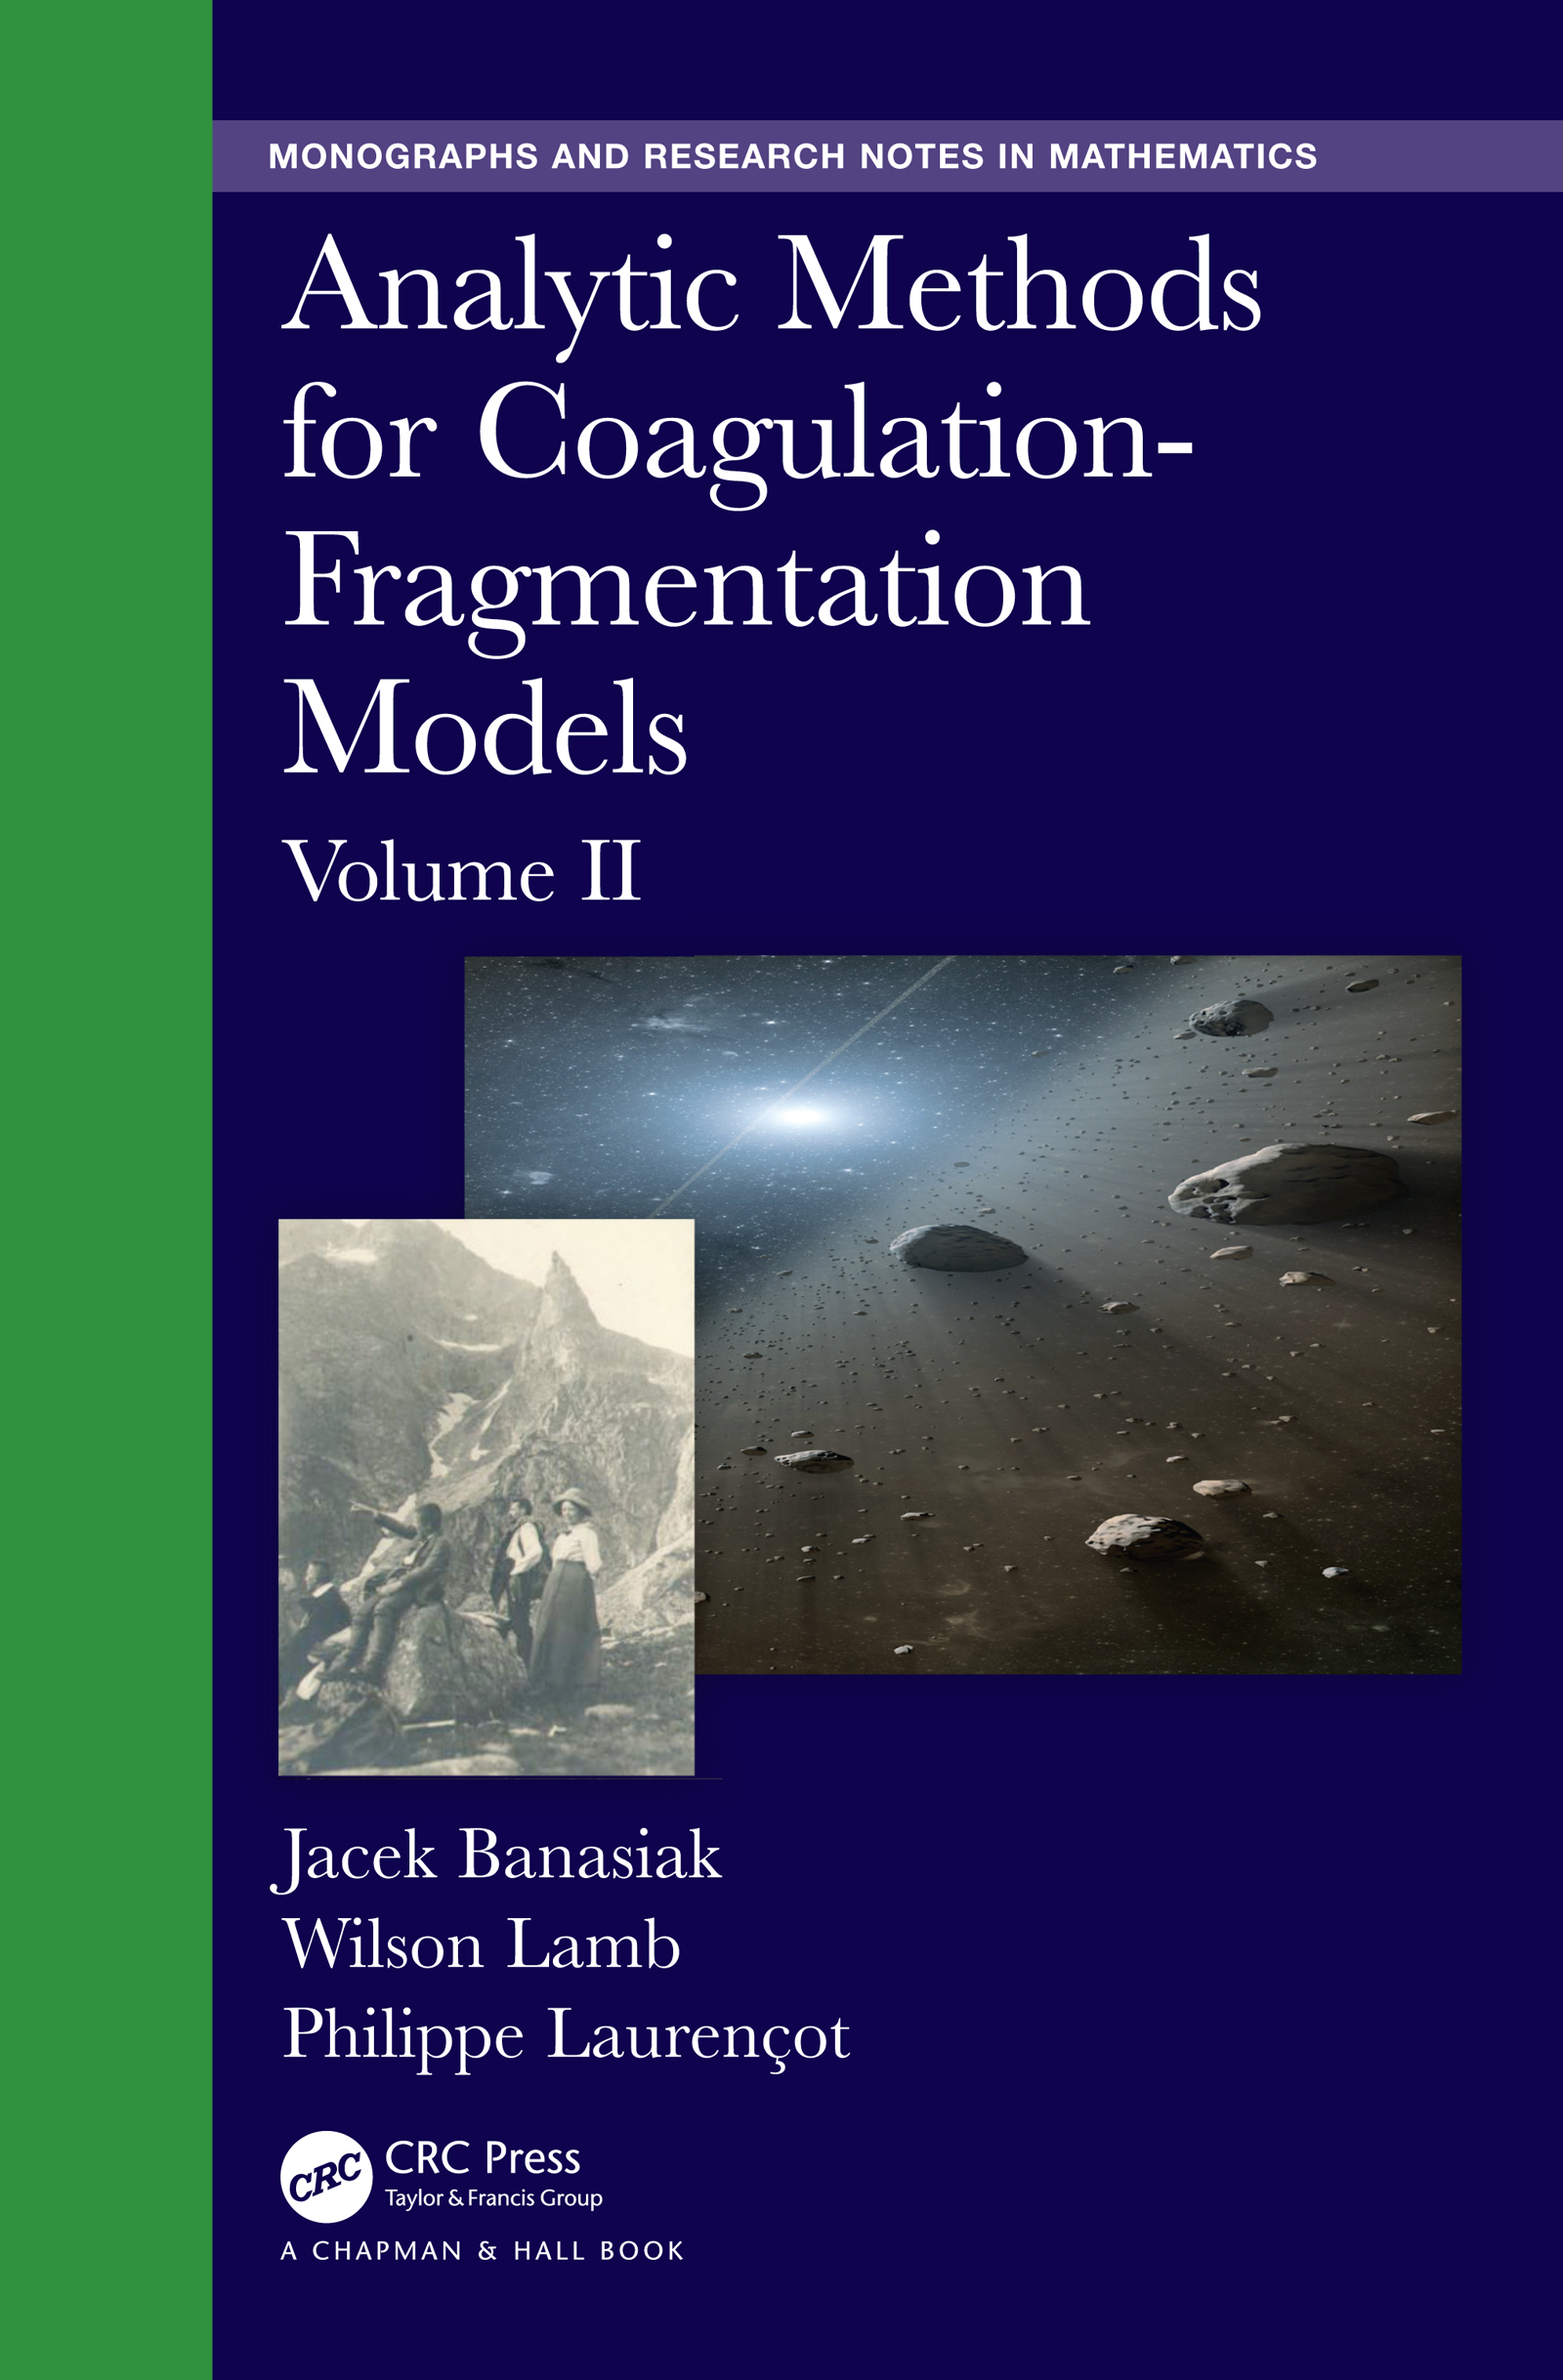 Analytic Methods for Coagulation-Fragmentation Models, Volume II book cover